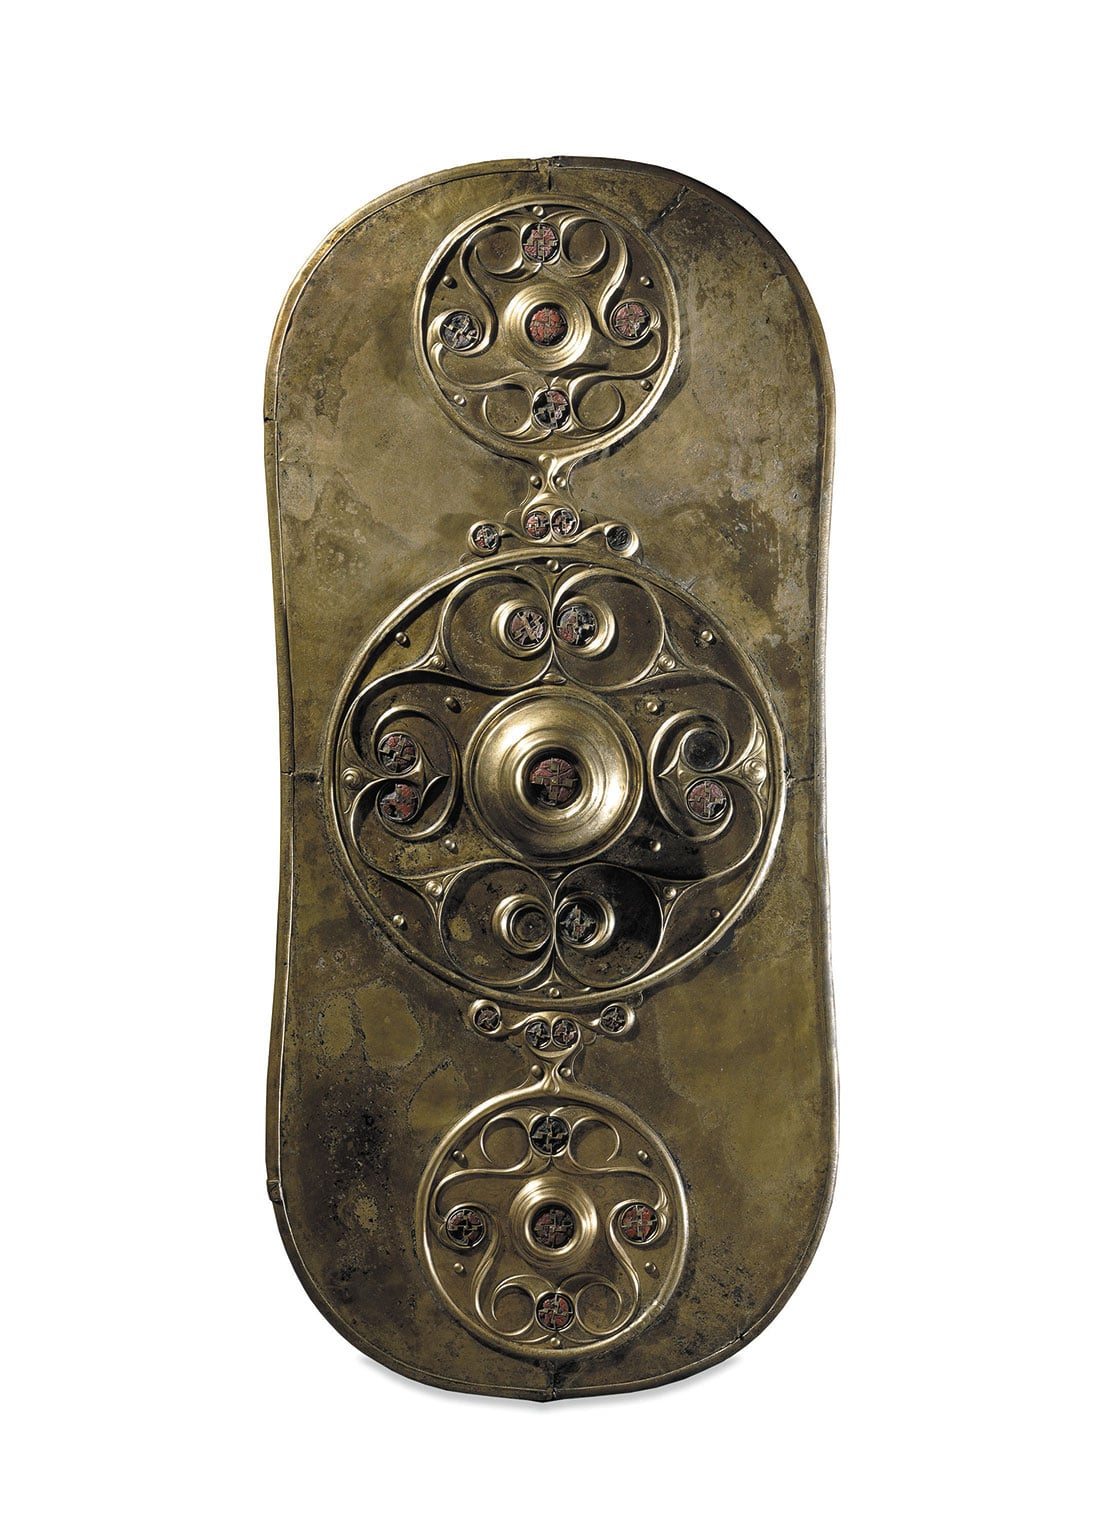 2. The Battersea Shield, England, 350-50 BC - © The Trustees of the British Museum